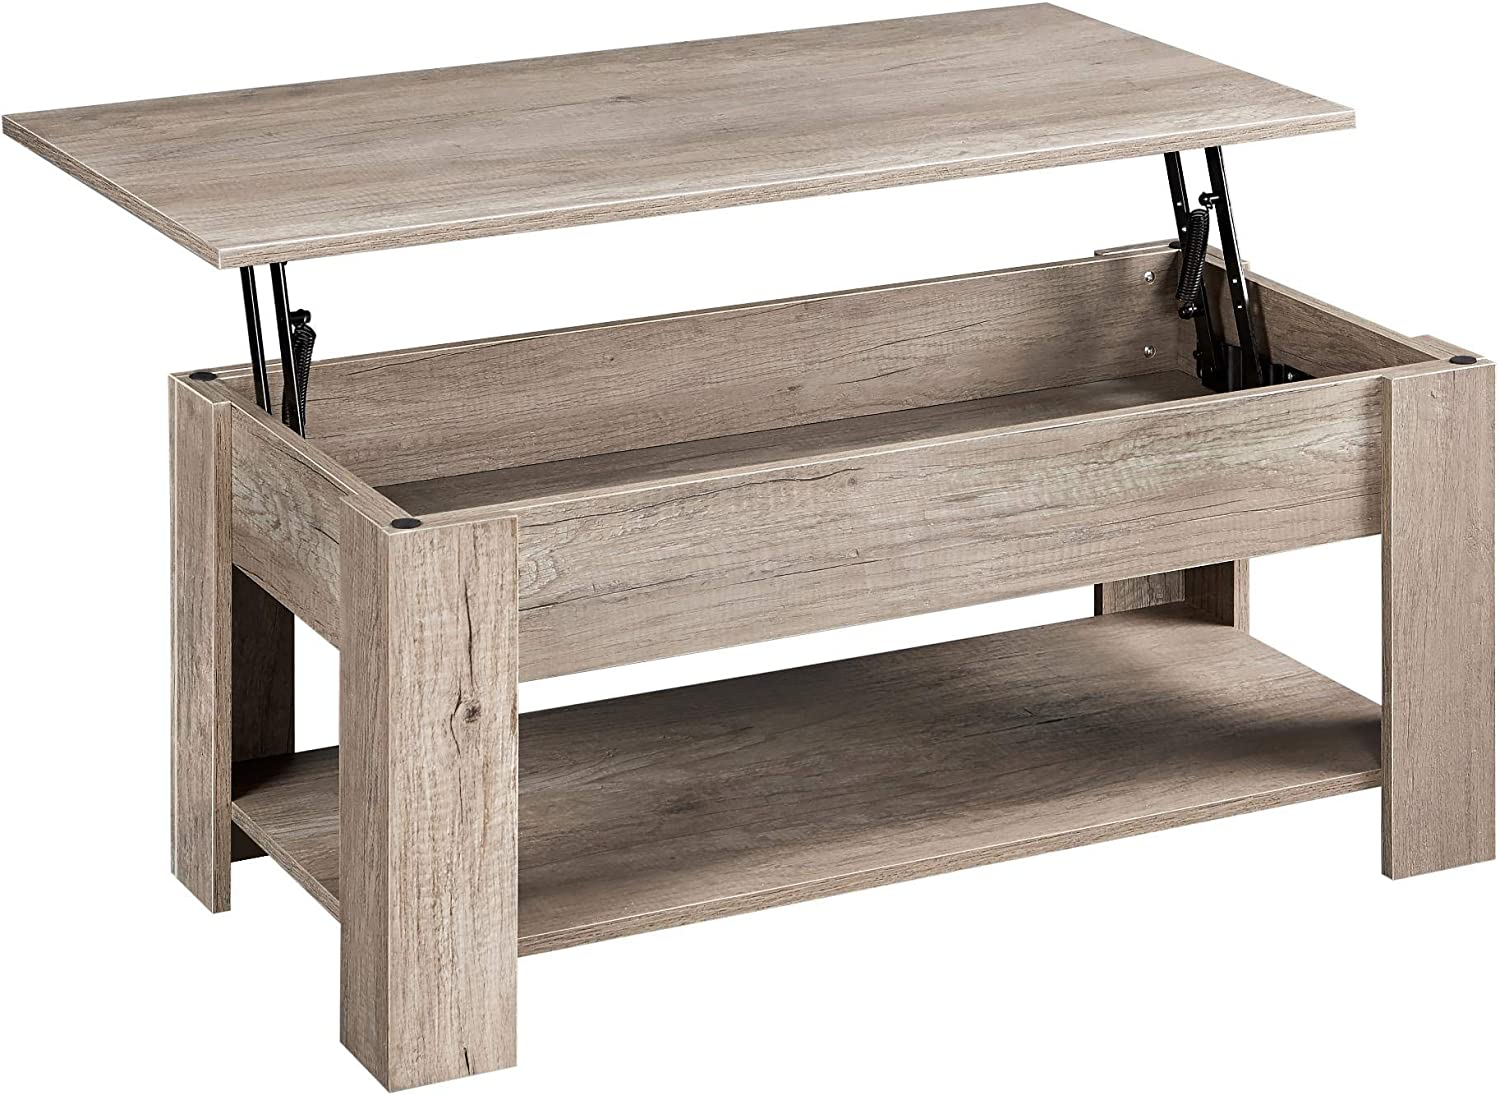 YAHEETECH Lift Top Coffee Table w/Hidden Compartment & Storage Rustic Coffee Table for Living Room Reception Room Office Gray